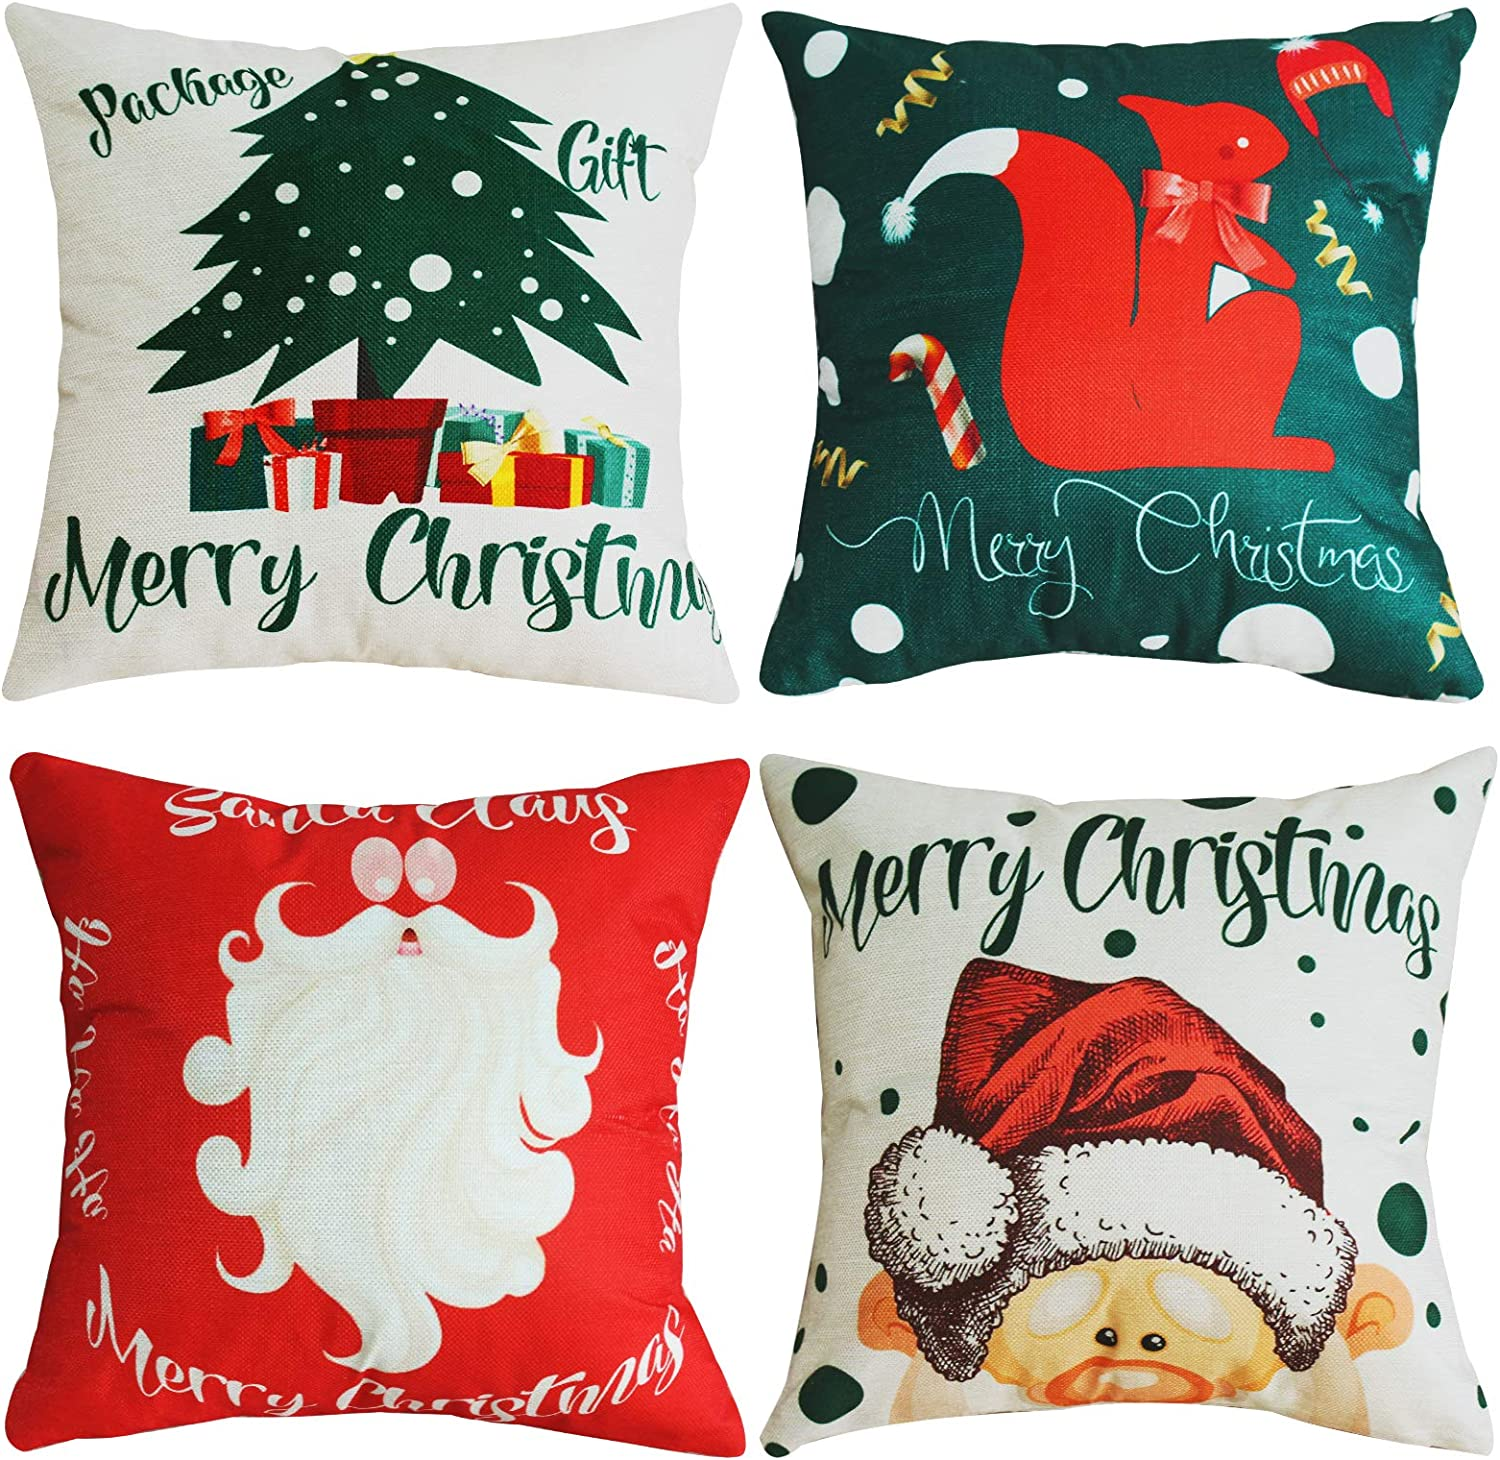 Christmas Decorations Pillow Covers 18x18Inch,Set of 4,Farmhouse Decor Throw Pillow Cases,Natural Burlap, Merry Christmas Tree,Cute Santa Squirrel,Home Decoration